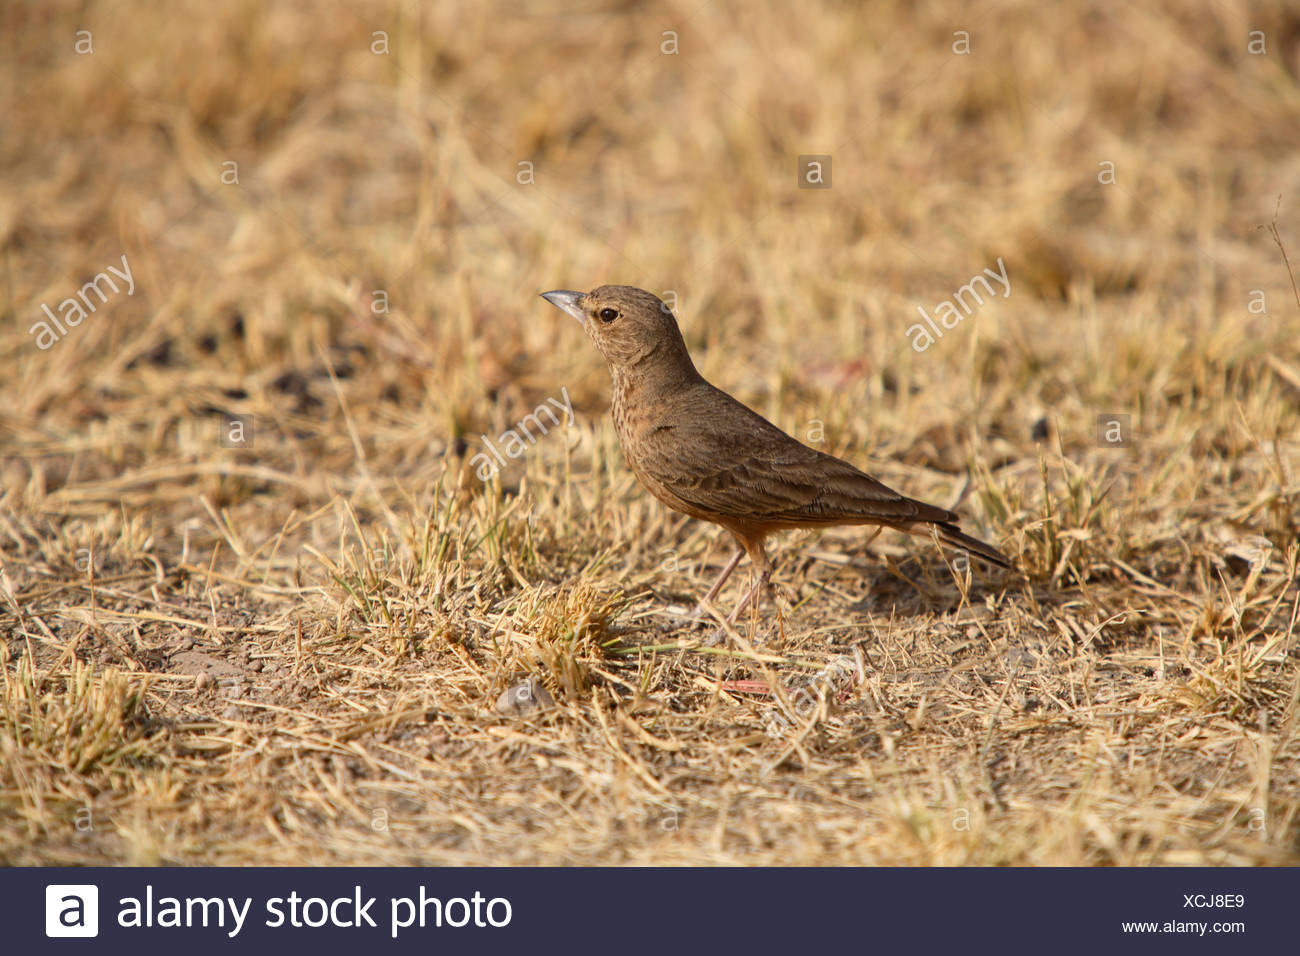 Rufus tailed lark, Ammomanes phoenicurus, at Rann of Kuchh, Gujrat, India. - Stock Image